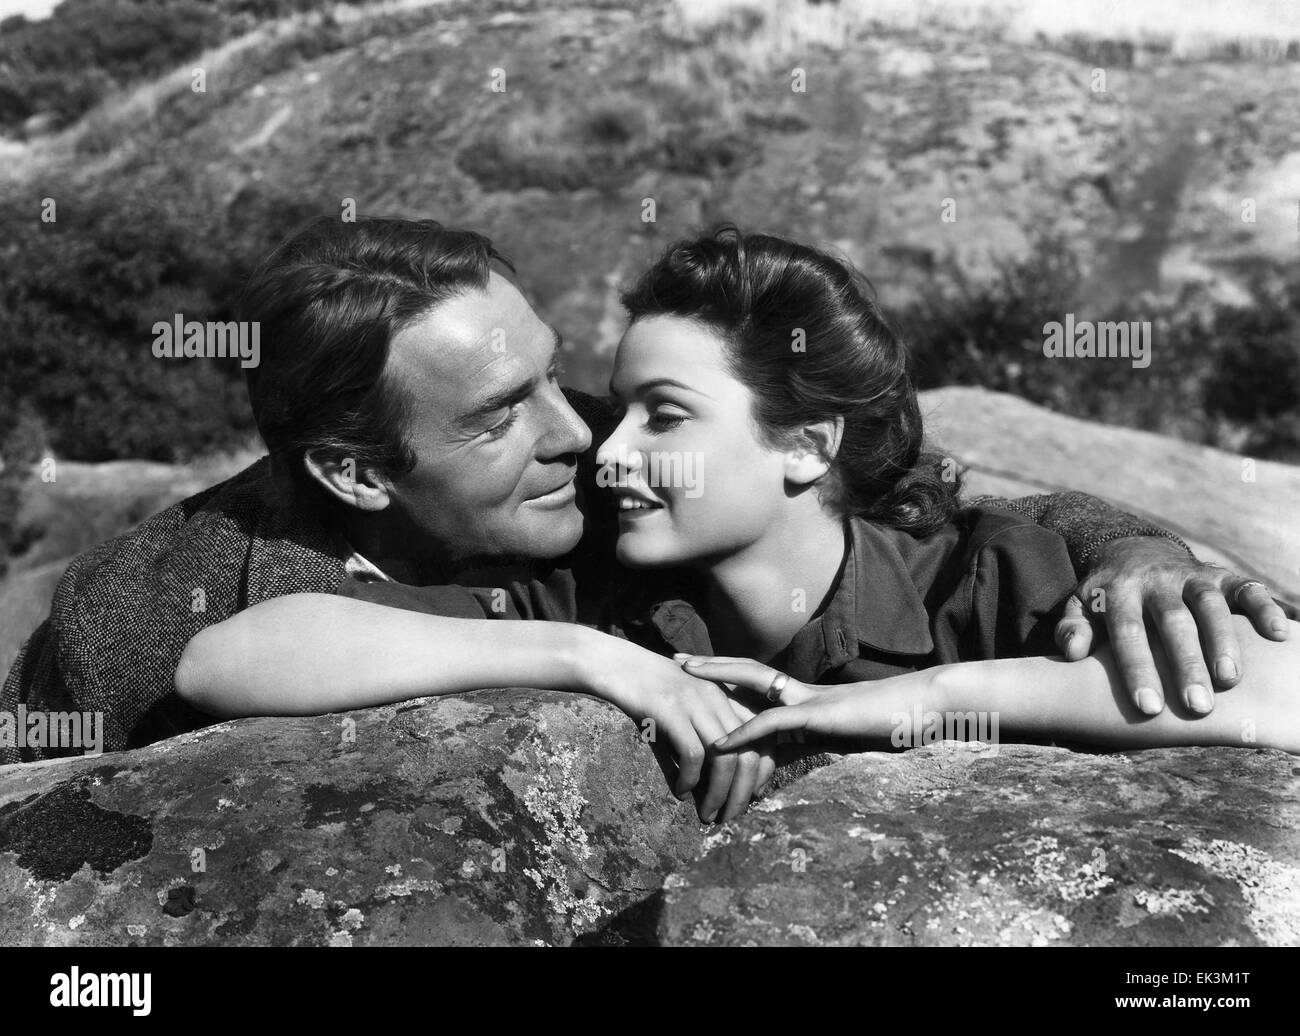 Randolph Scott, Gene Tierney, on-set of the Film ' Belle Star', 1941, 20th Century Fox Film Corp. All rights - Stock Image